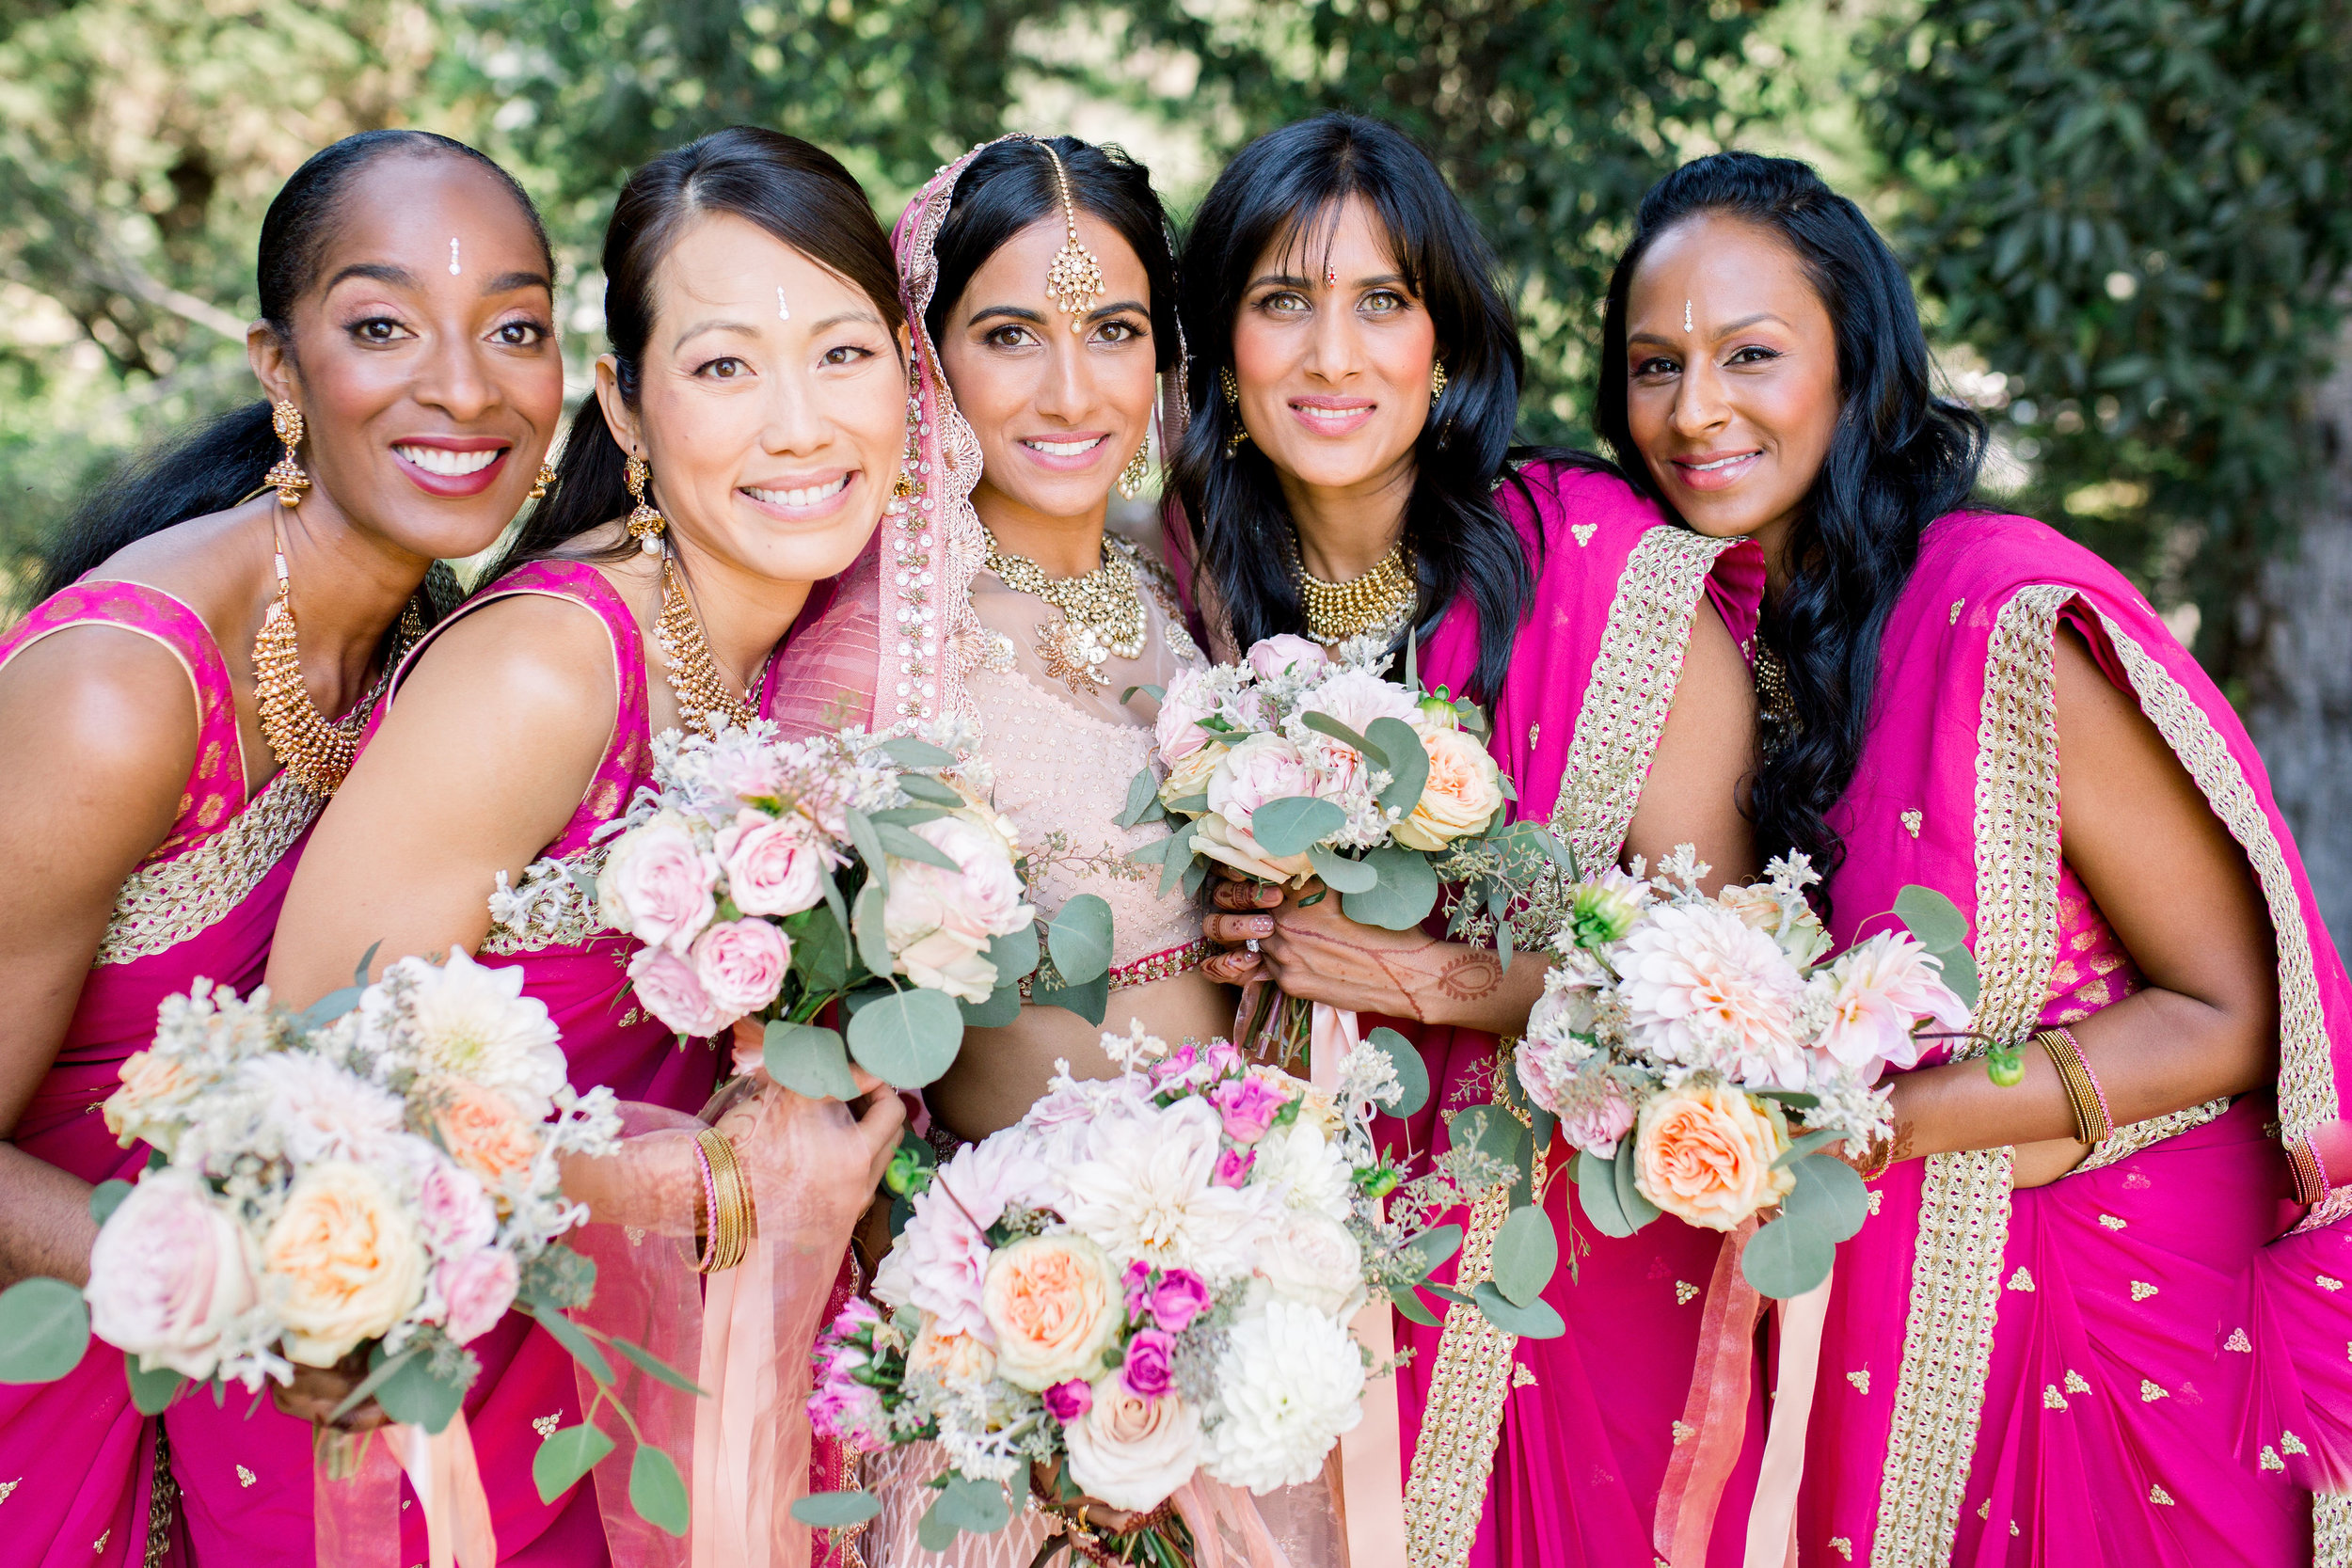 We are obsessed with the bright colors! Uma and her bridesmaids look stunning.